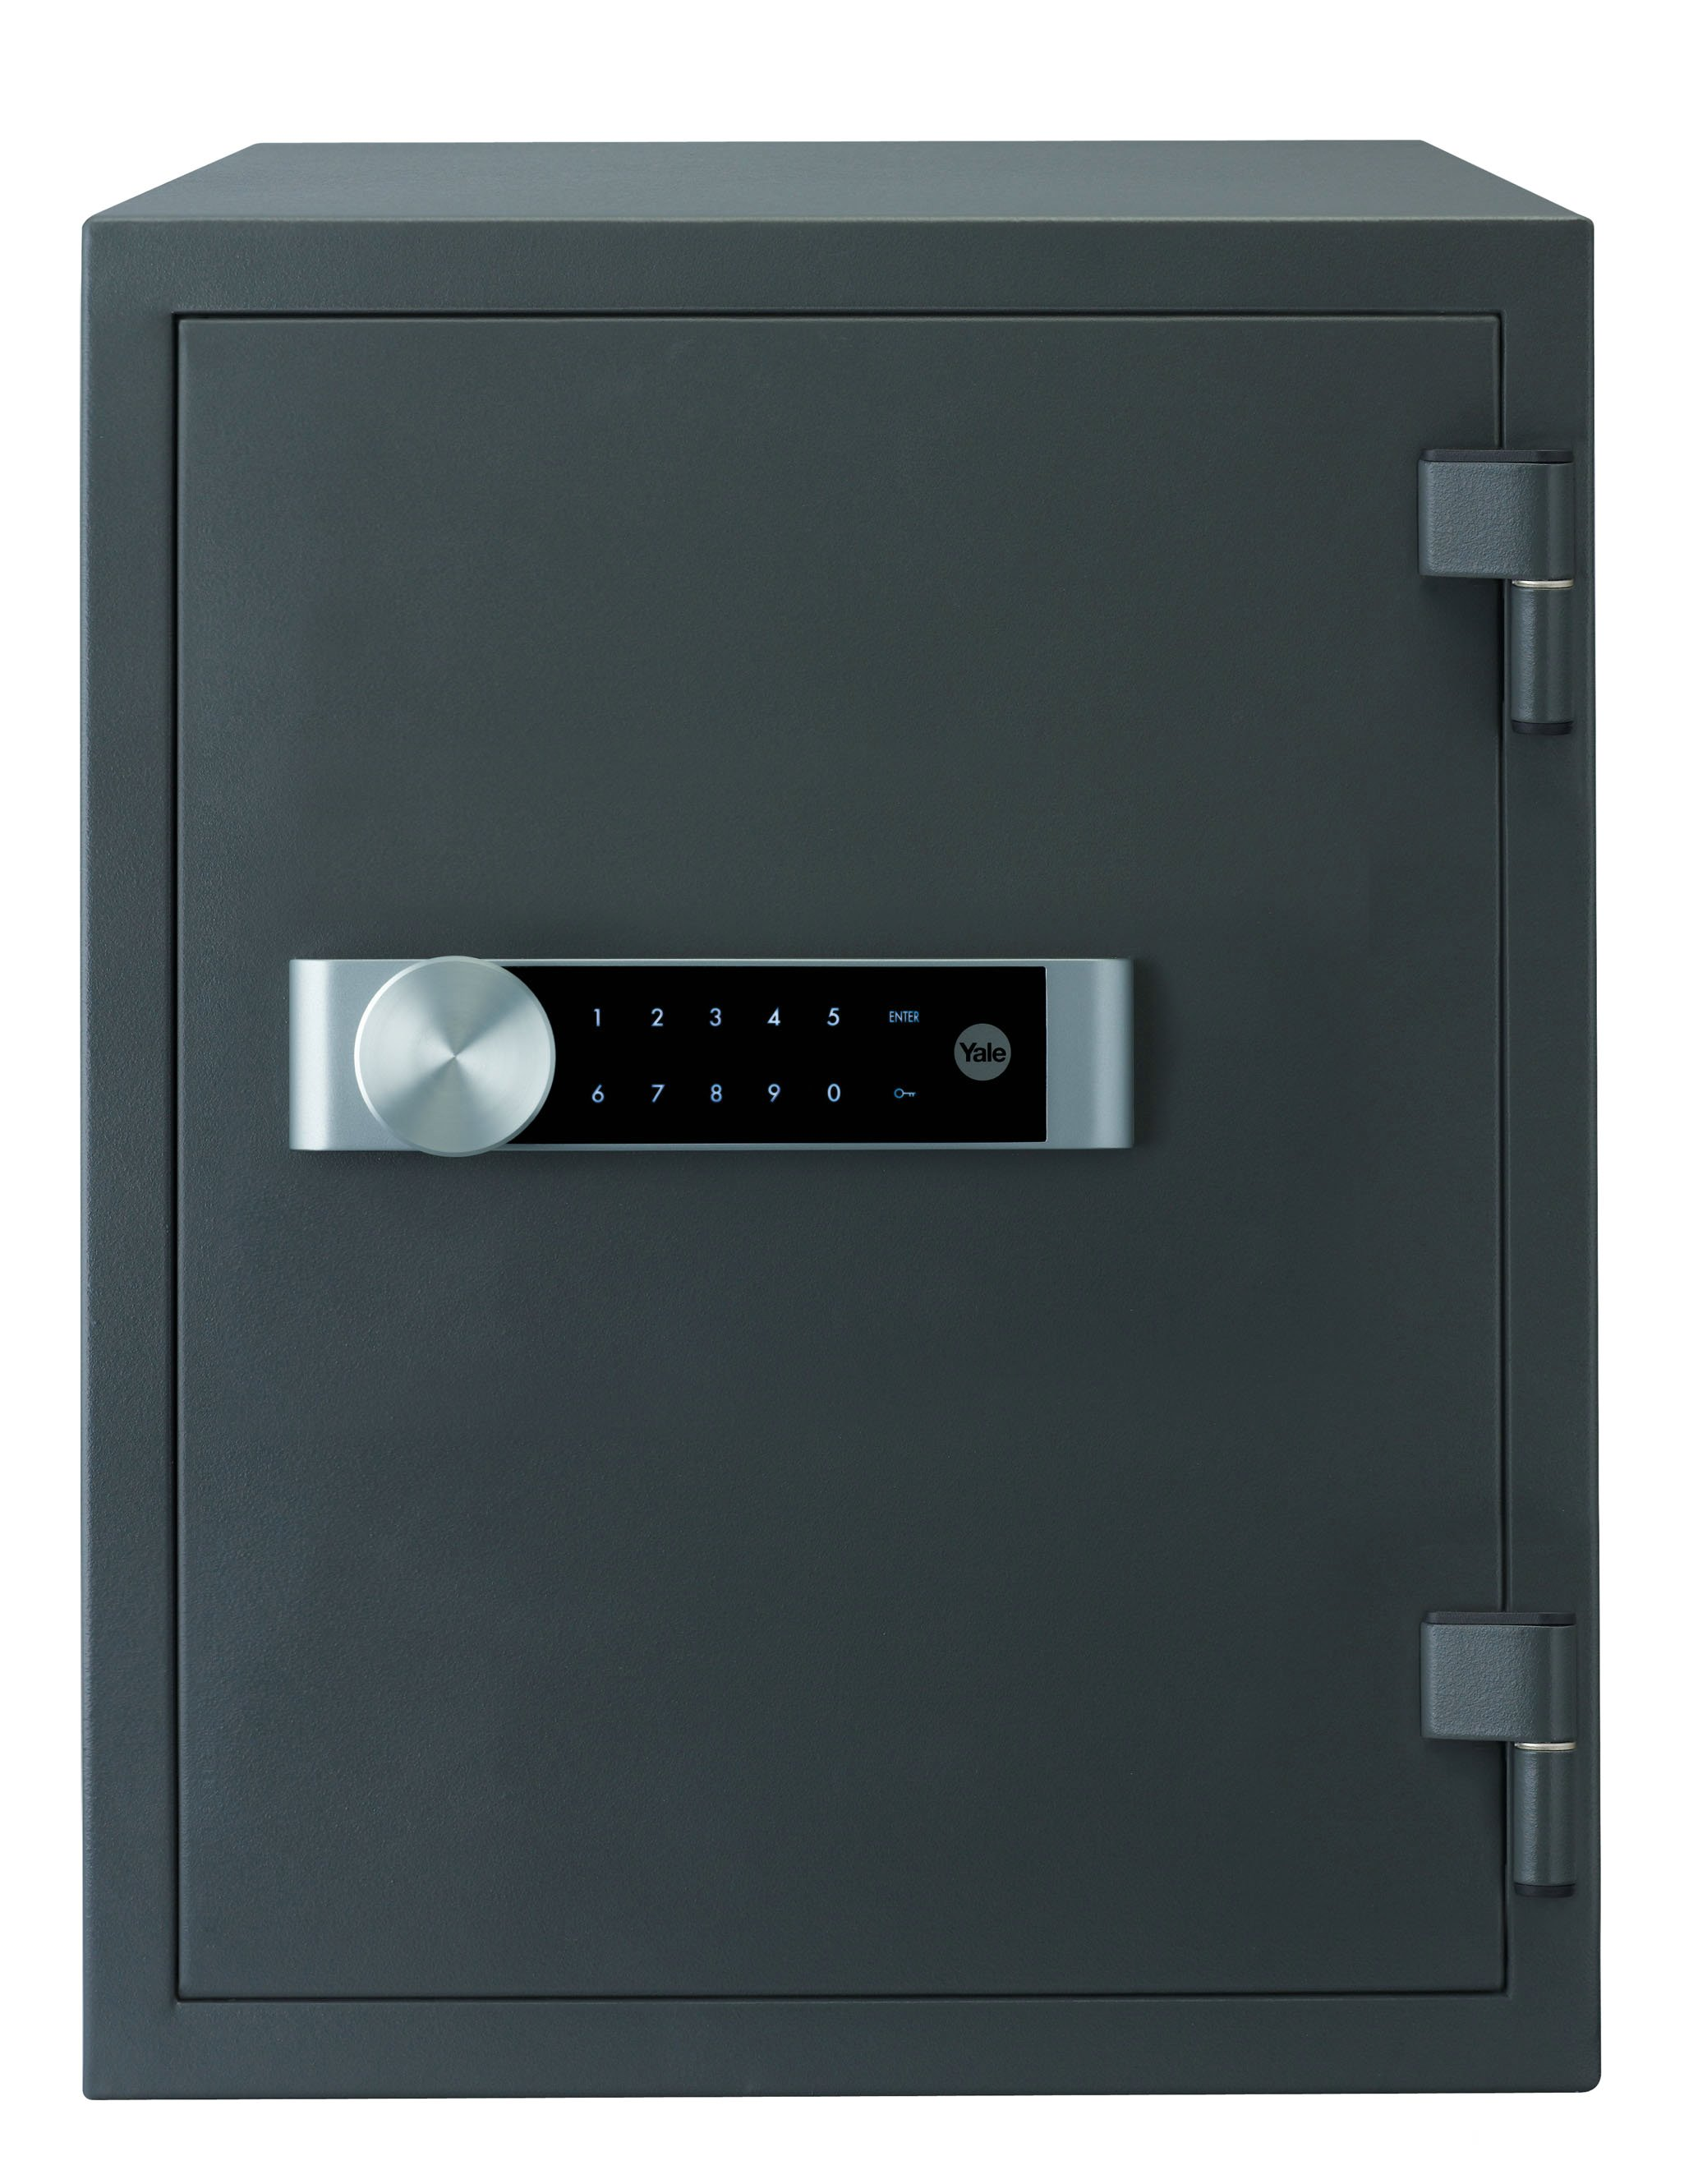 YFM/520/FG2 - X-Large Document Fire Safe